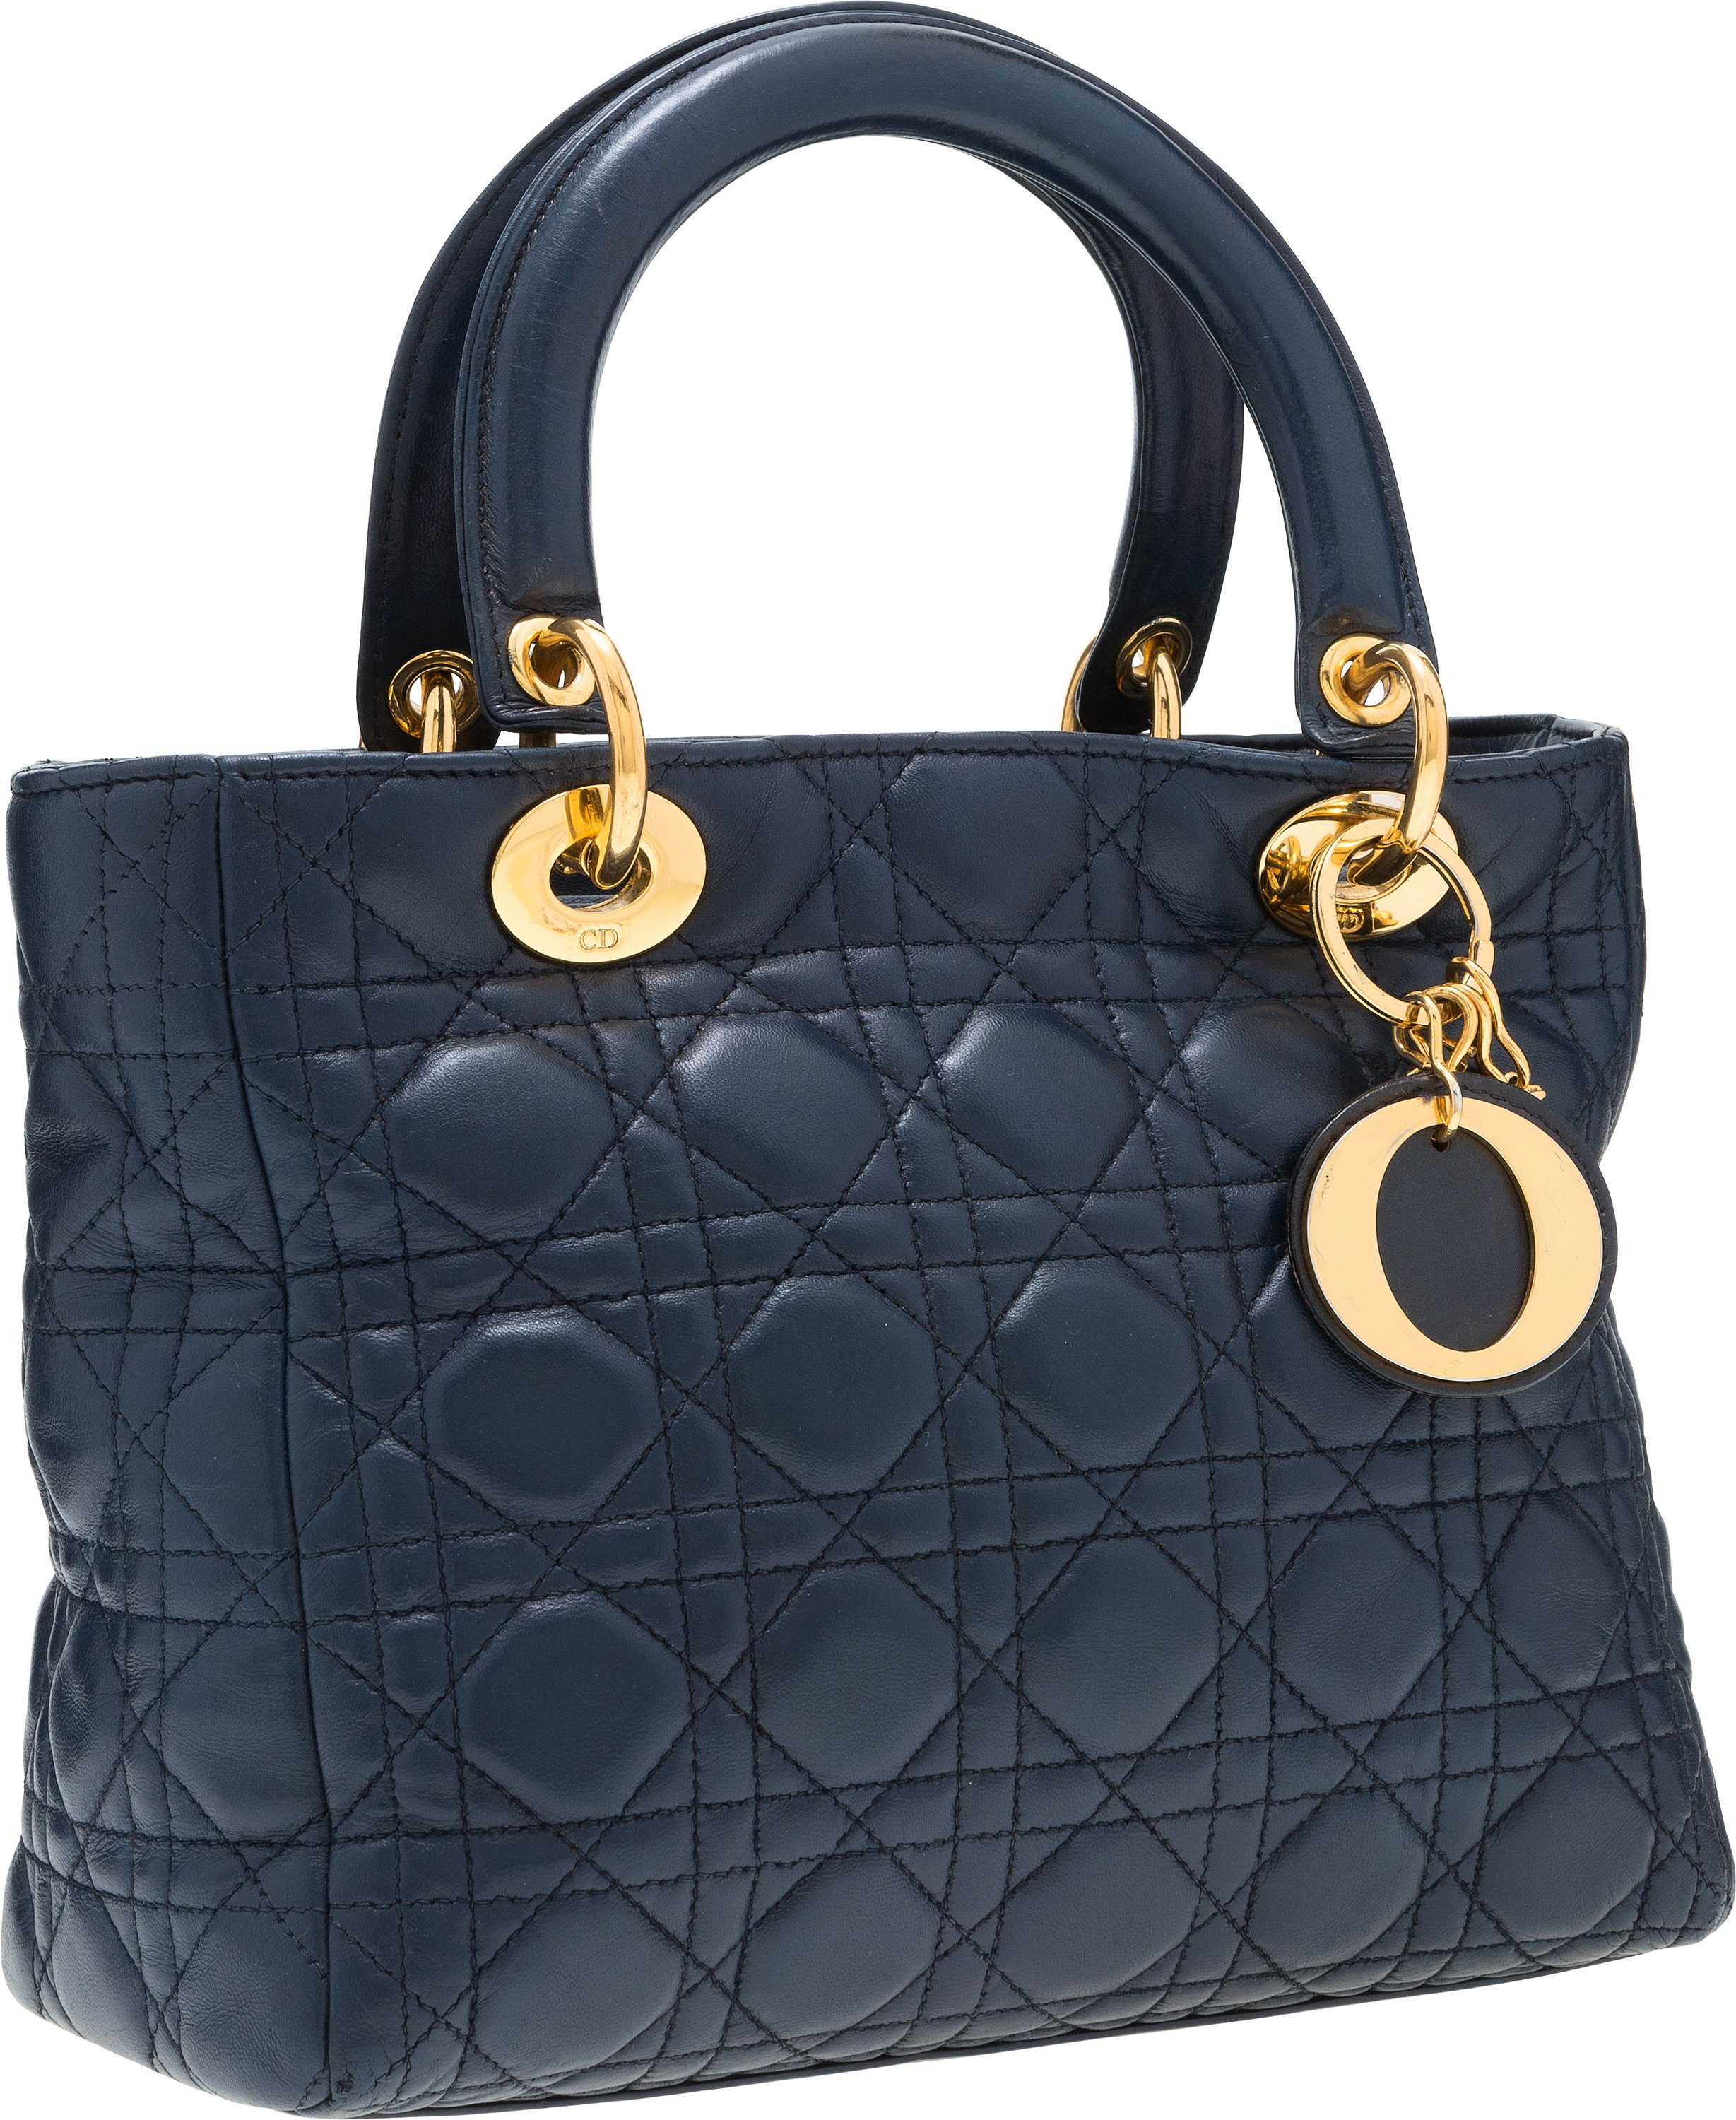 2606df72eca Christian Dior Navy Blue Cannage Leather Lady Dior MM Tote Bag with | Lot  #58889 | Heritage Auctions